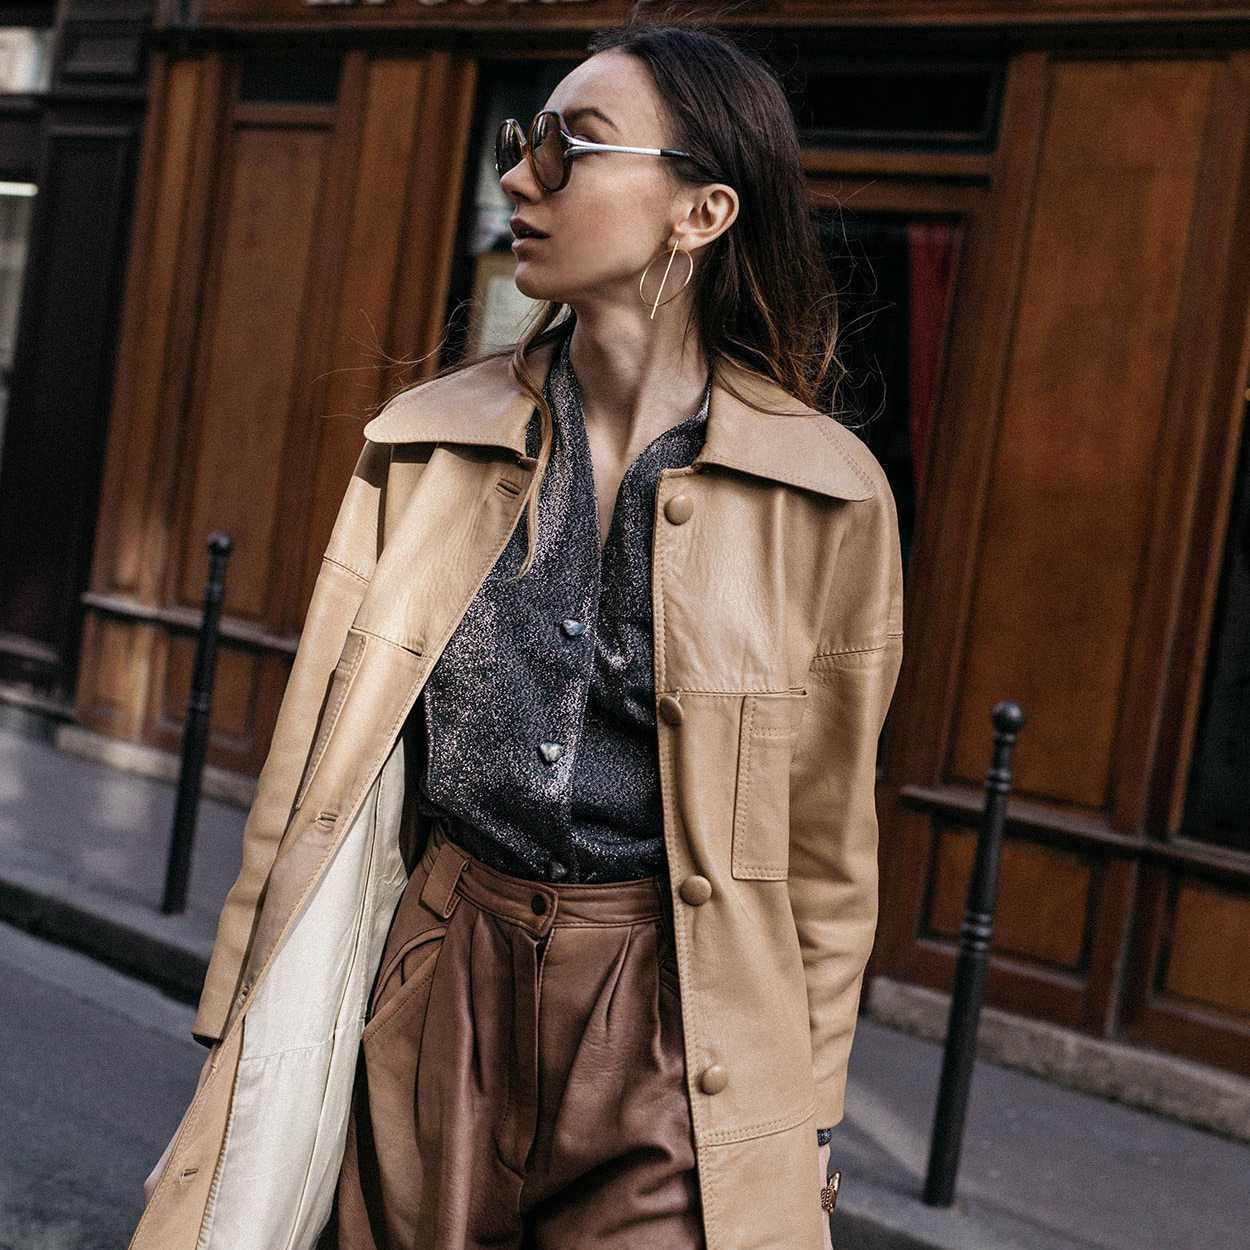 Woman wearing a beige leather trench coat